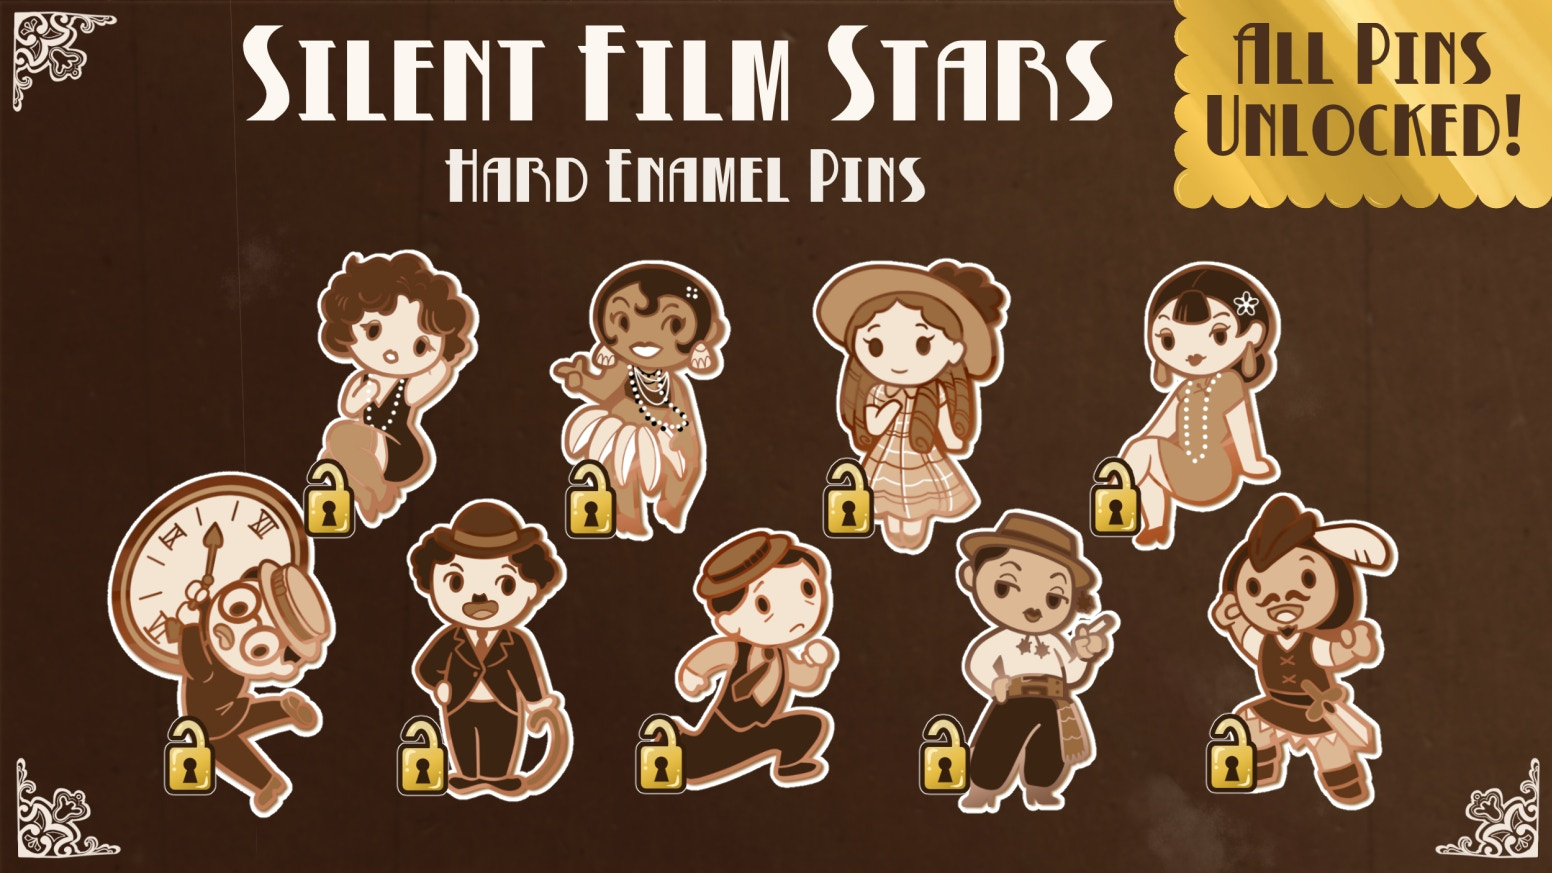 A set of hard enamel pins featuring silent movie actors of the 1920s. All nine pin designs have been unlocked!